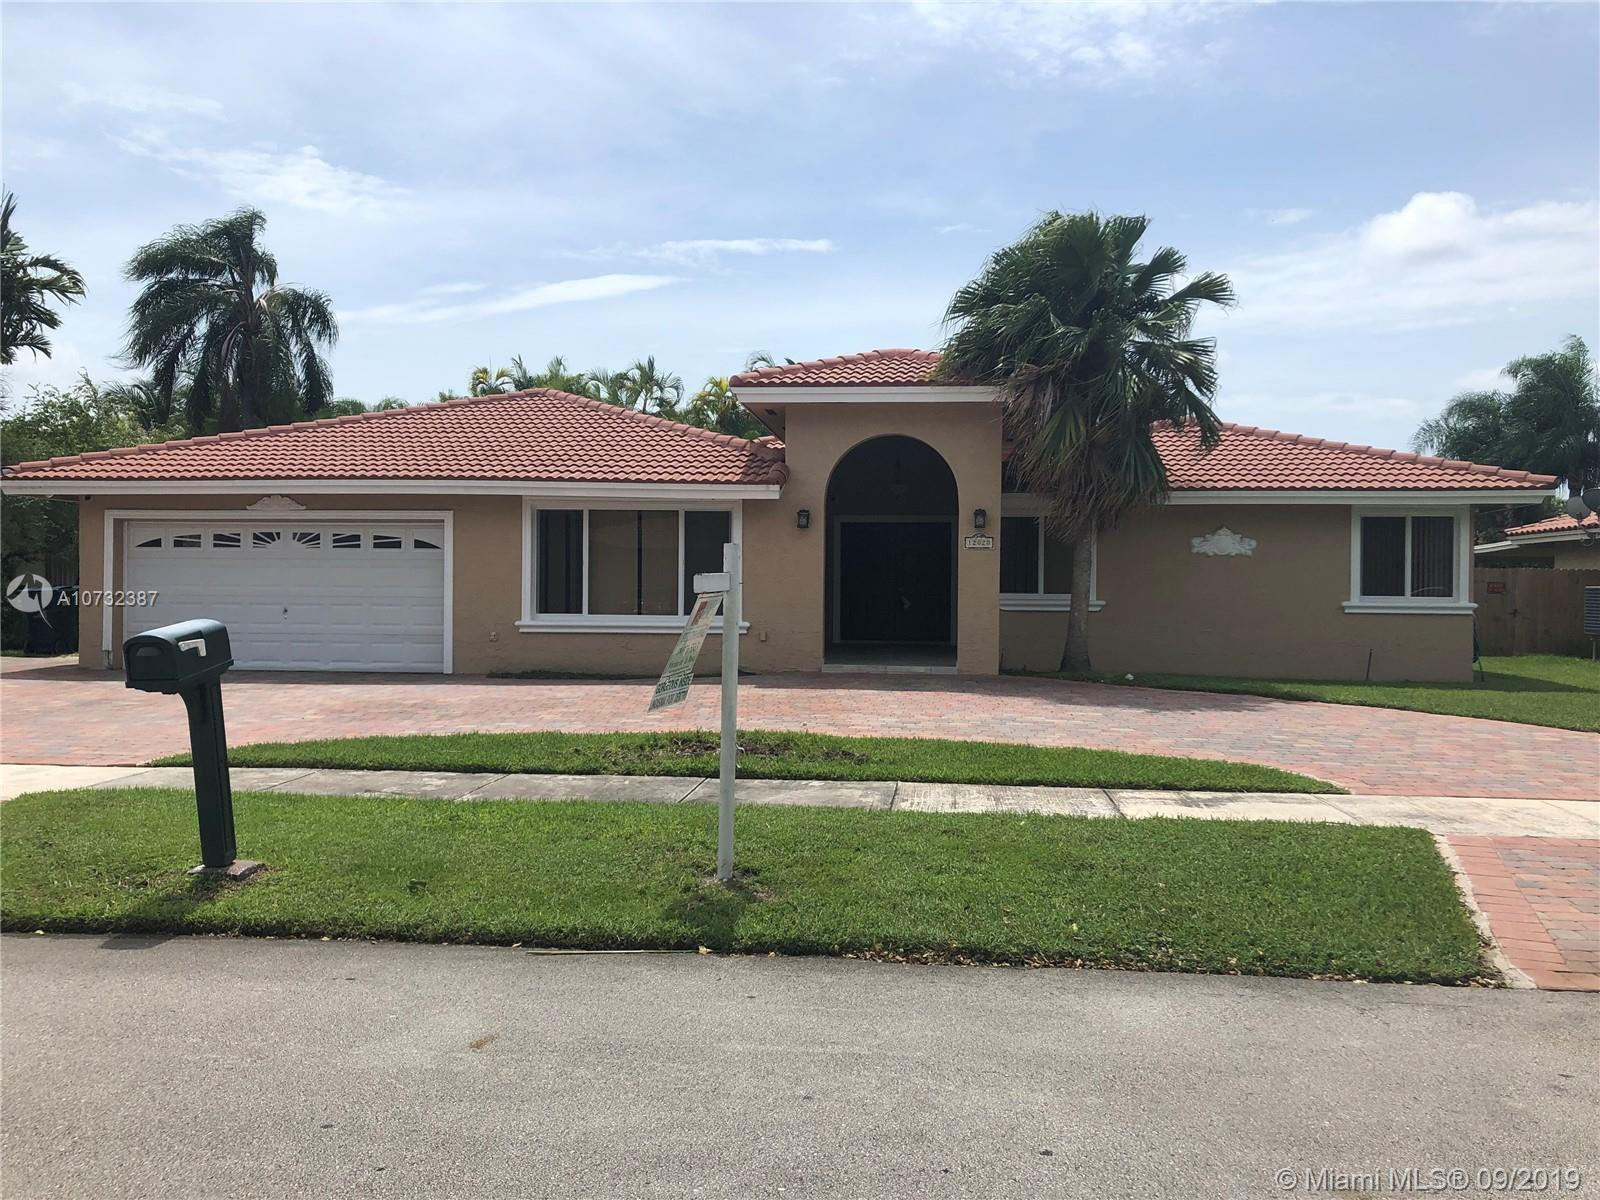 12020 SW 97th Ter, Kendall in Miami-dade County County, FL 33186 Home for Sale